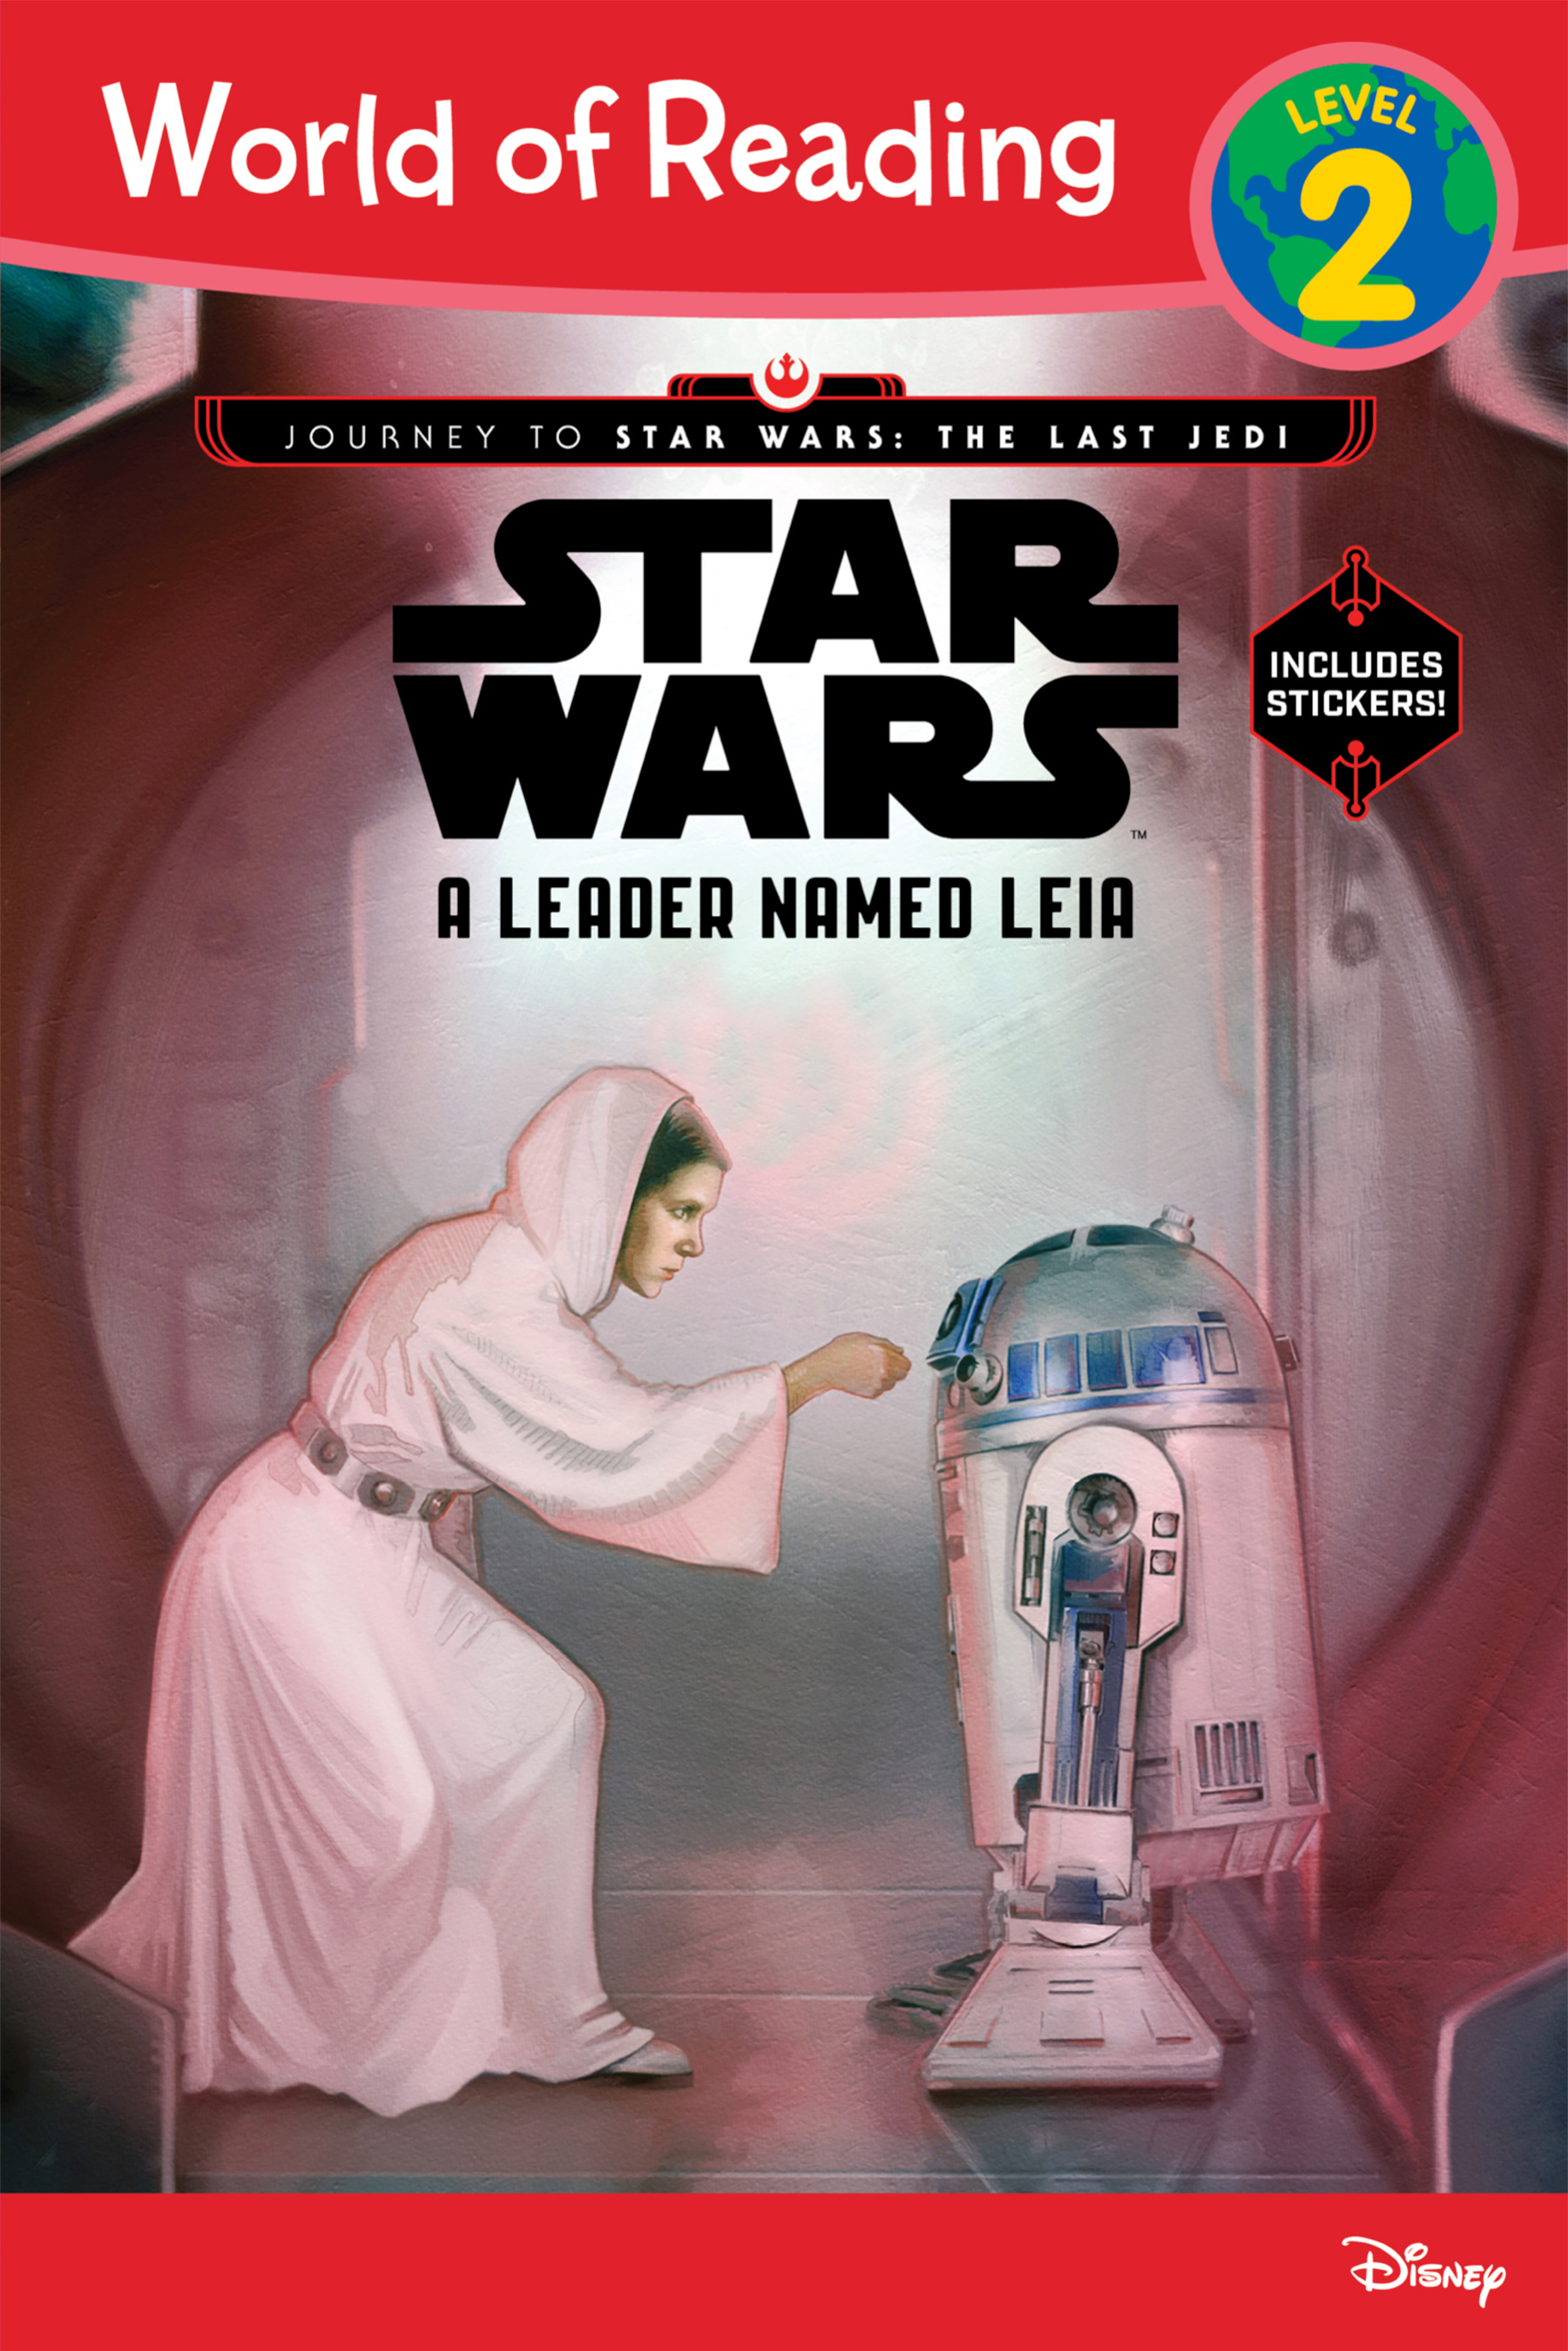 Star Wars: A Leader Named Leia